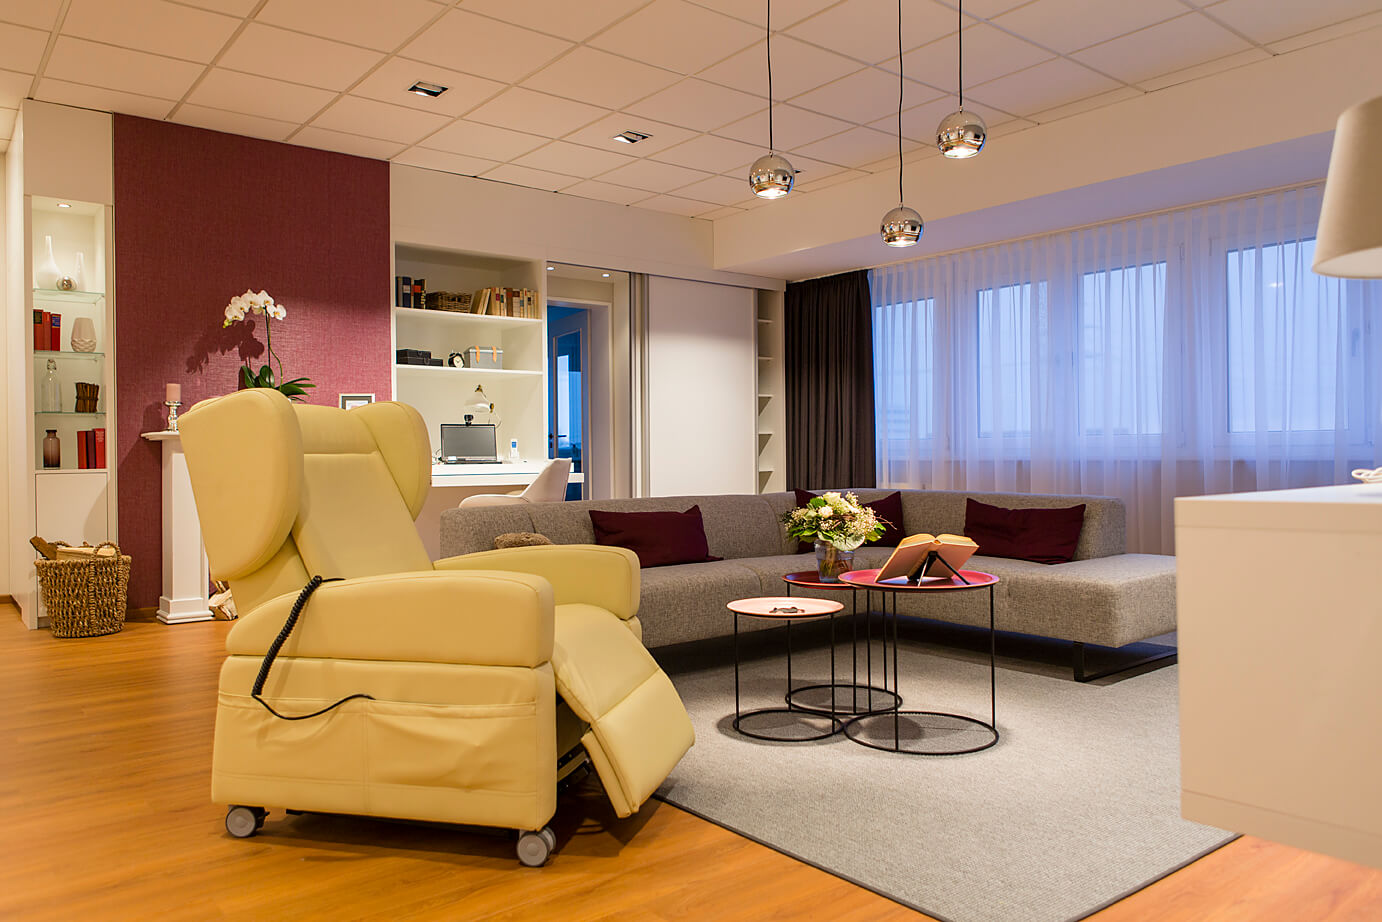 Ambient Assisted Living Musterwohnung Wohnzimmer